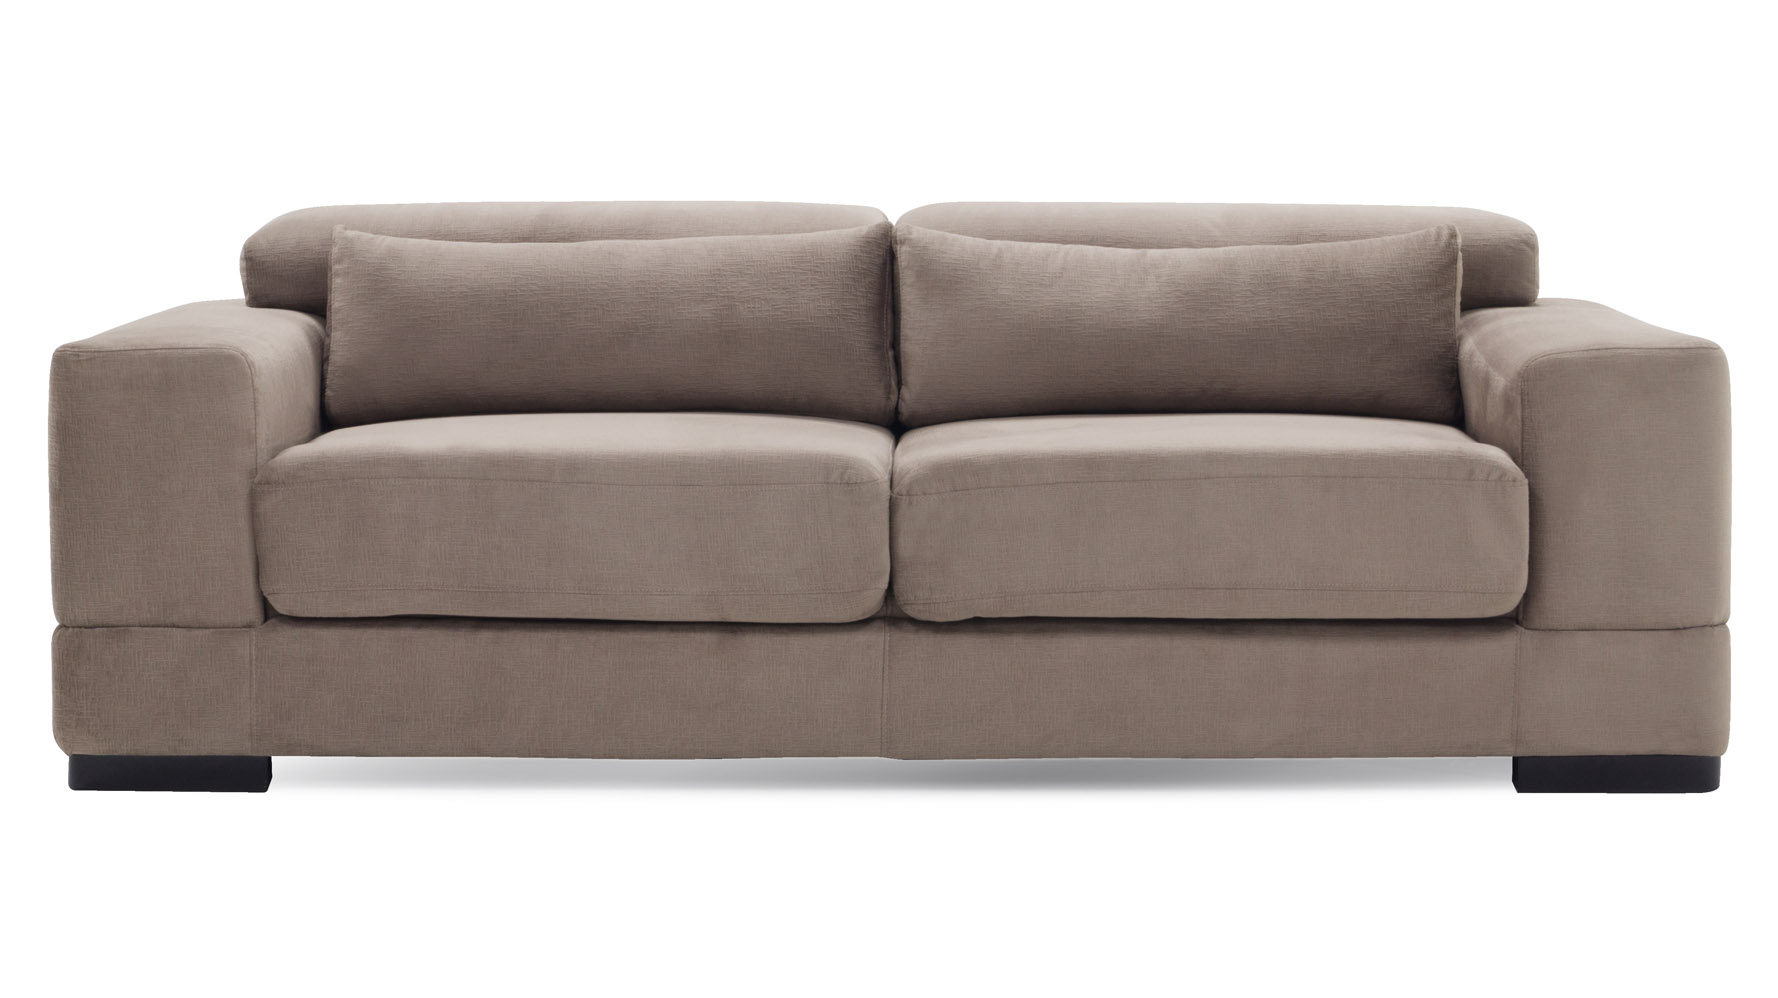 pottery barn deluxe sleeper sofa reviews one night stand sofas  review home decor